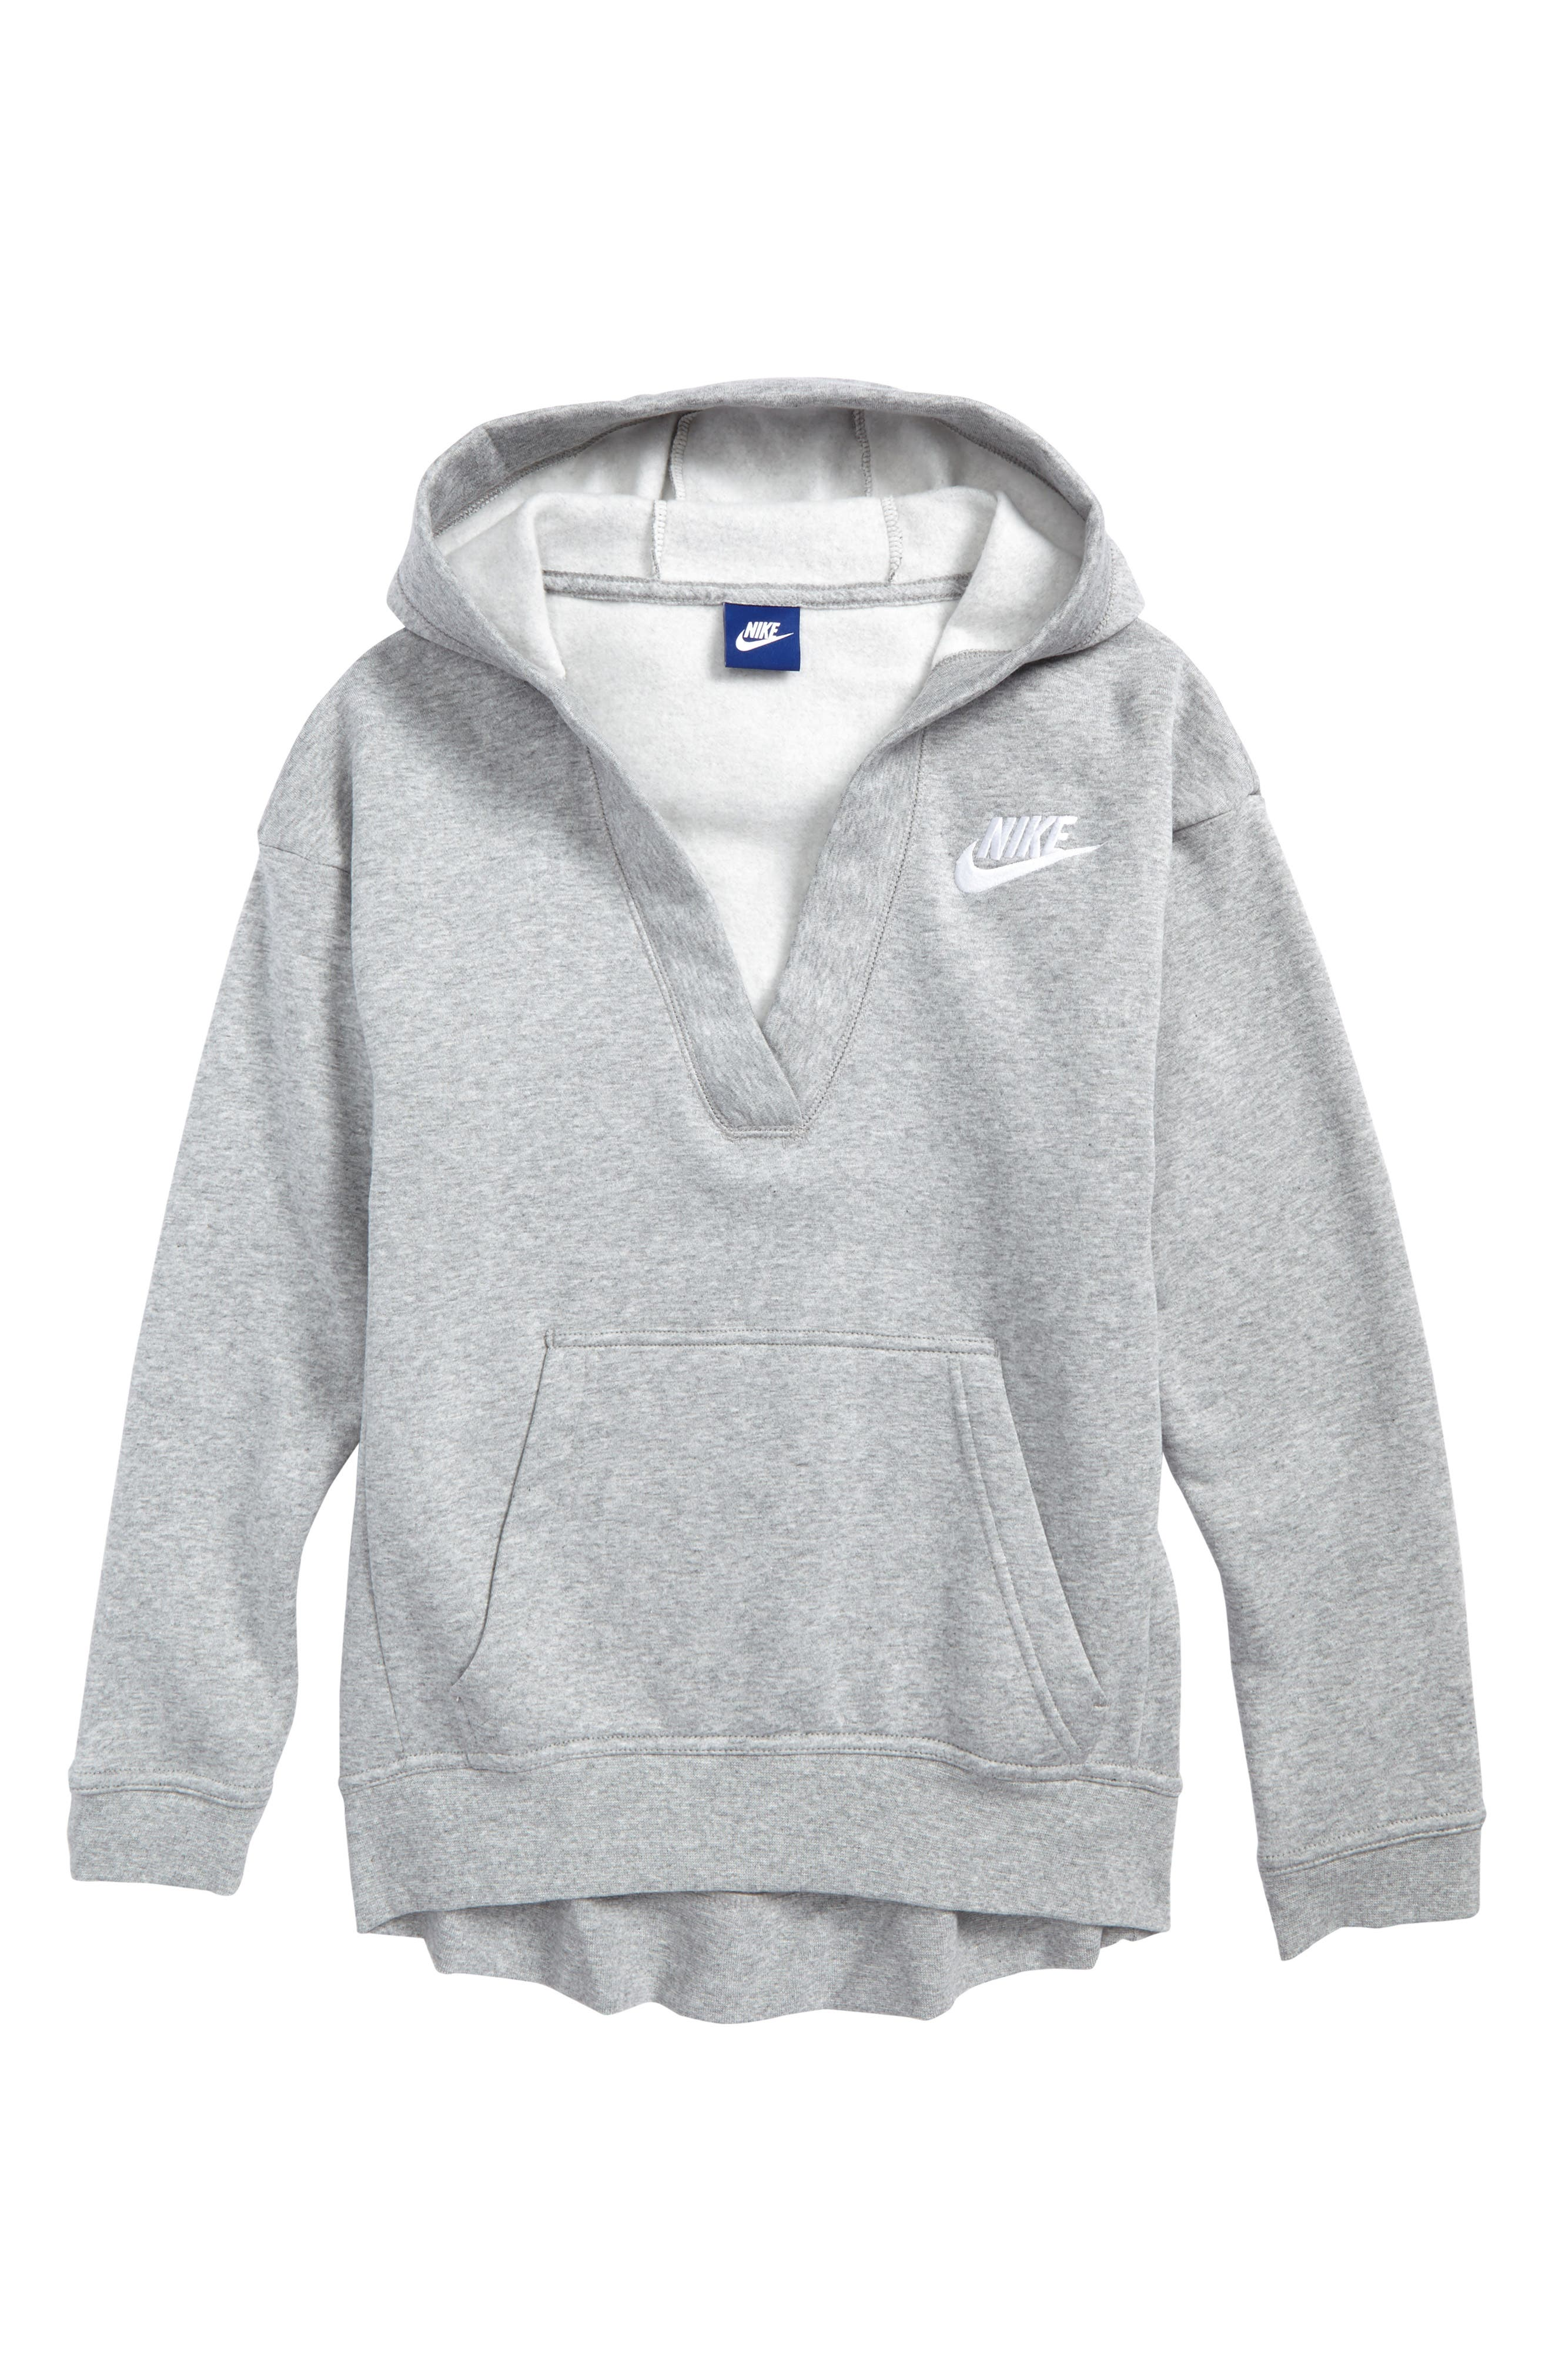 V-Neck Pullover Hoodie,                         Main,                         color, Dark Grey Heather/ White